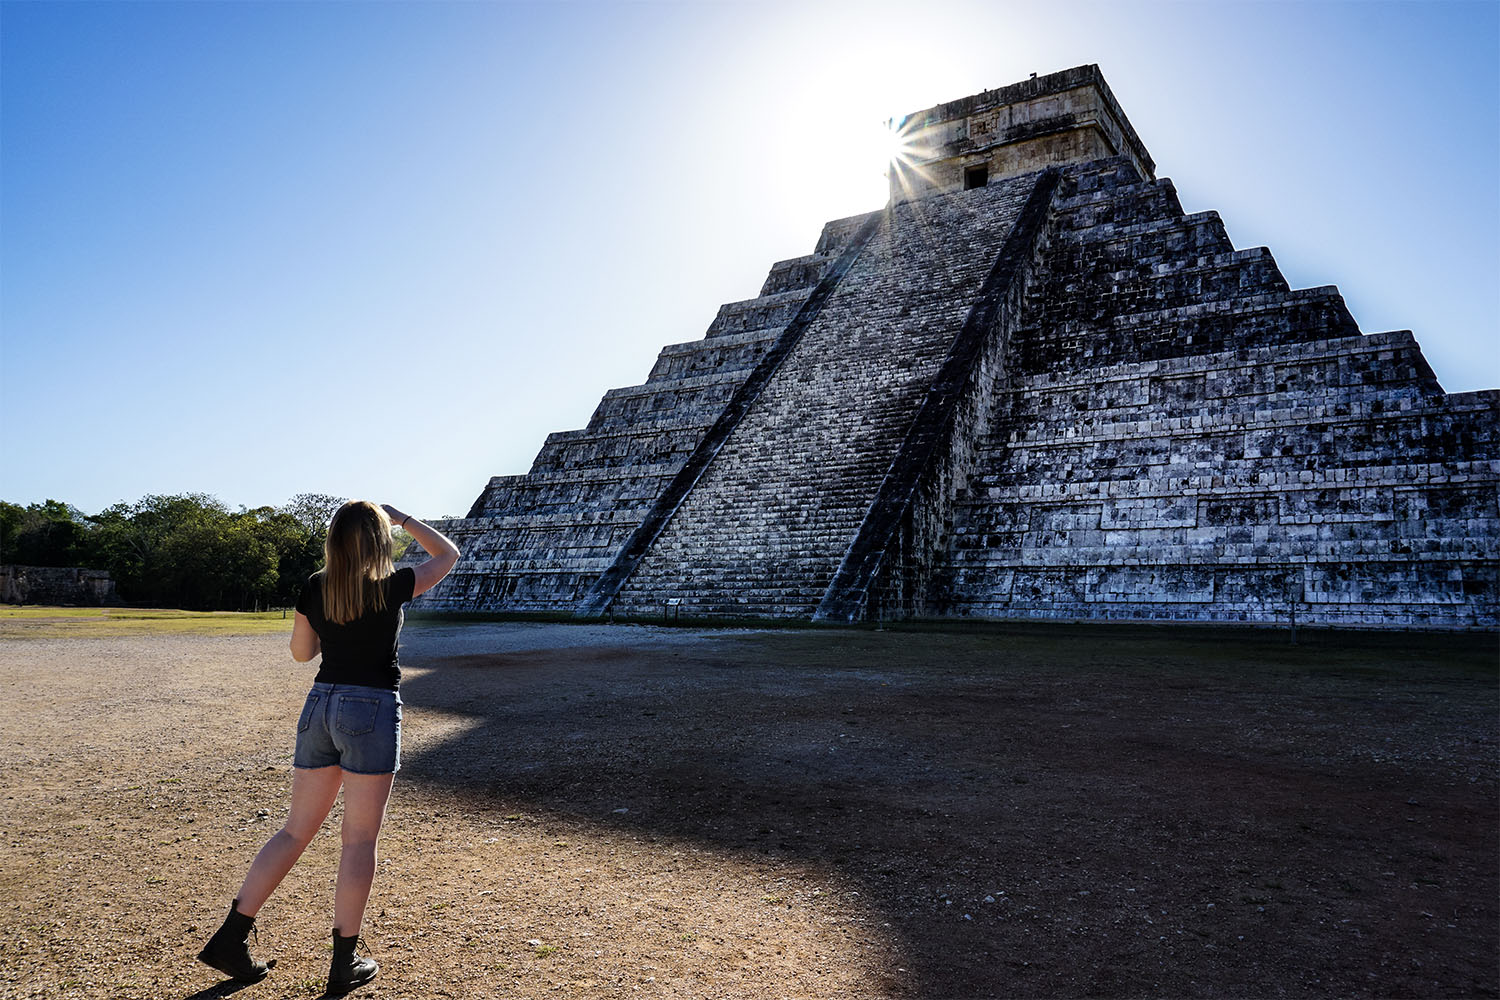 Haunted pyramid at Chichen Itza.